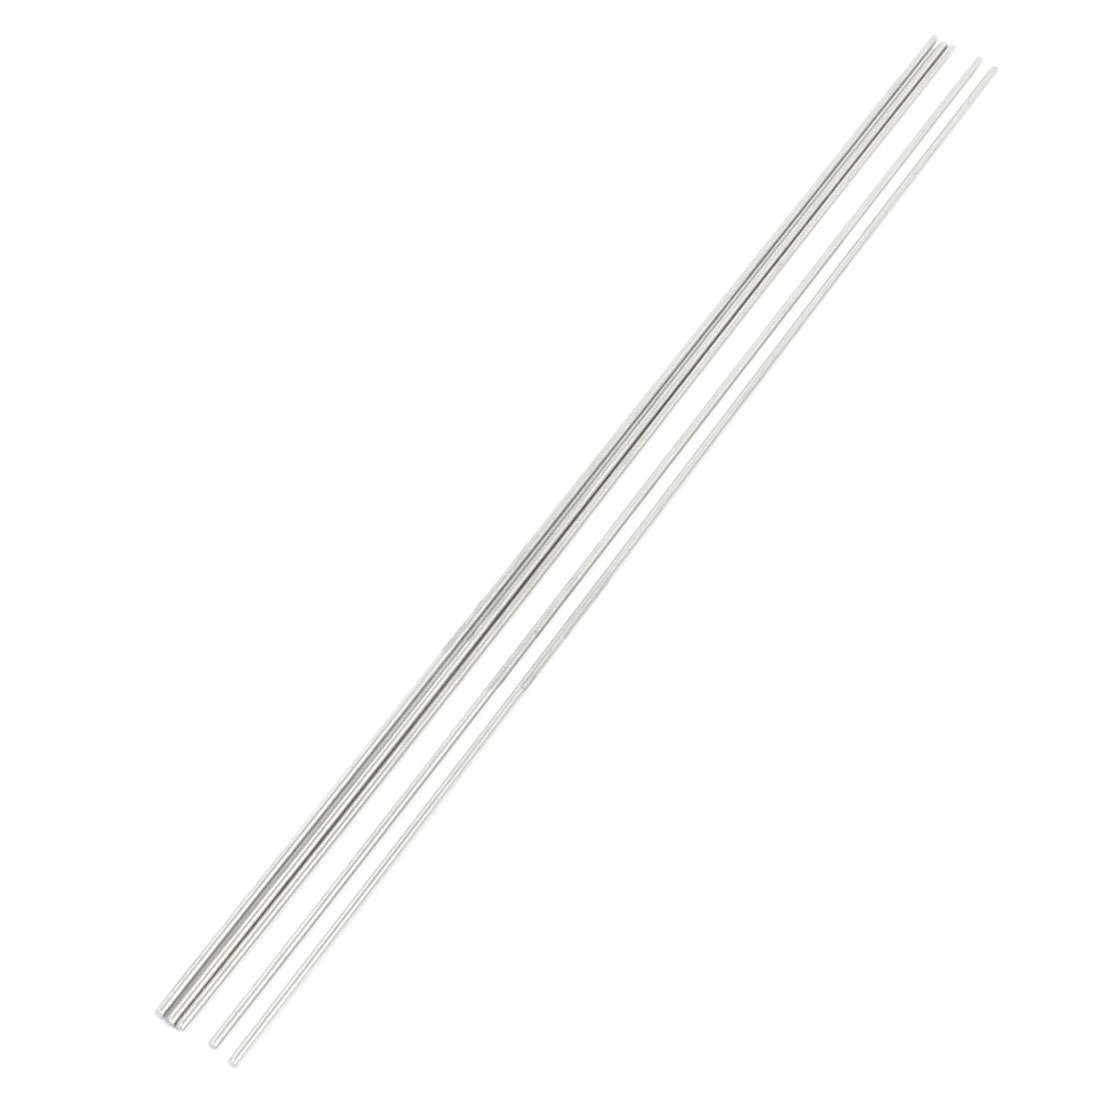 5pcs RC Aircraft Toys Replacement Stainless Steel Round Bar 300x2mm